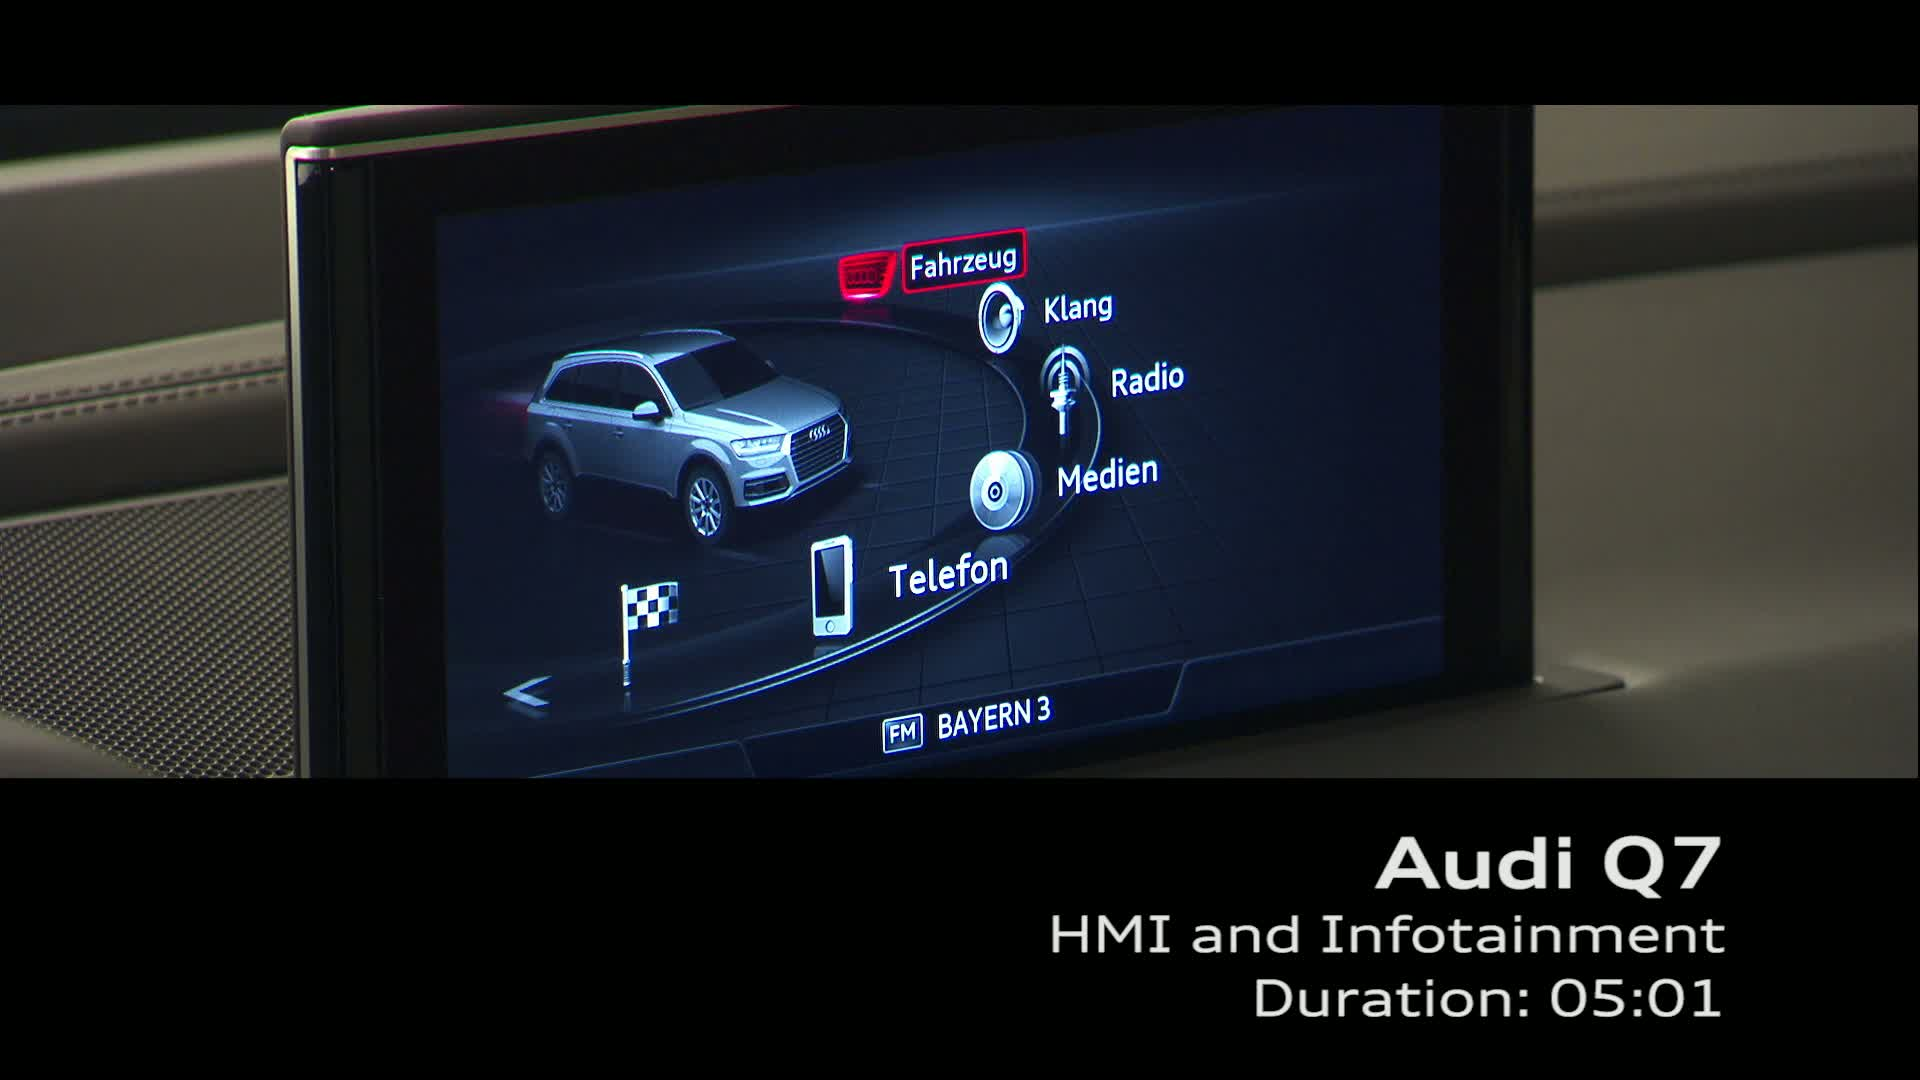 Audi Q7 - Footage HMI and Infotainment